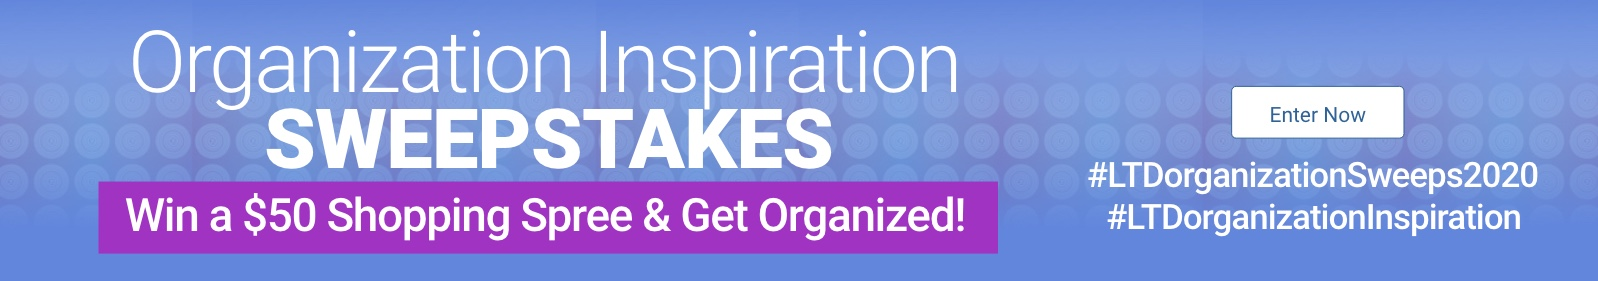 Organization Inspiration Sweepstakes. Enter now